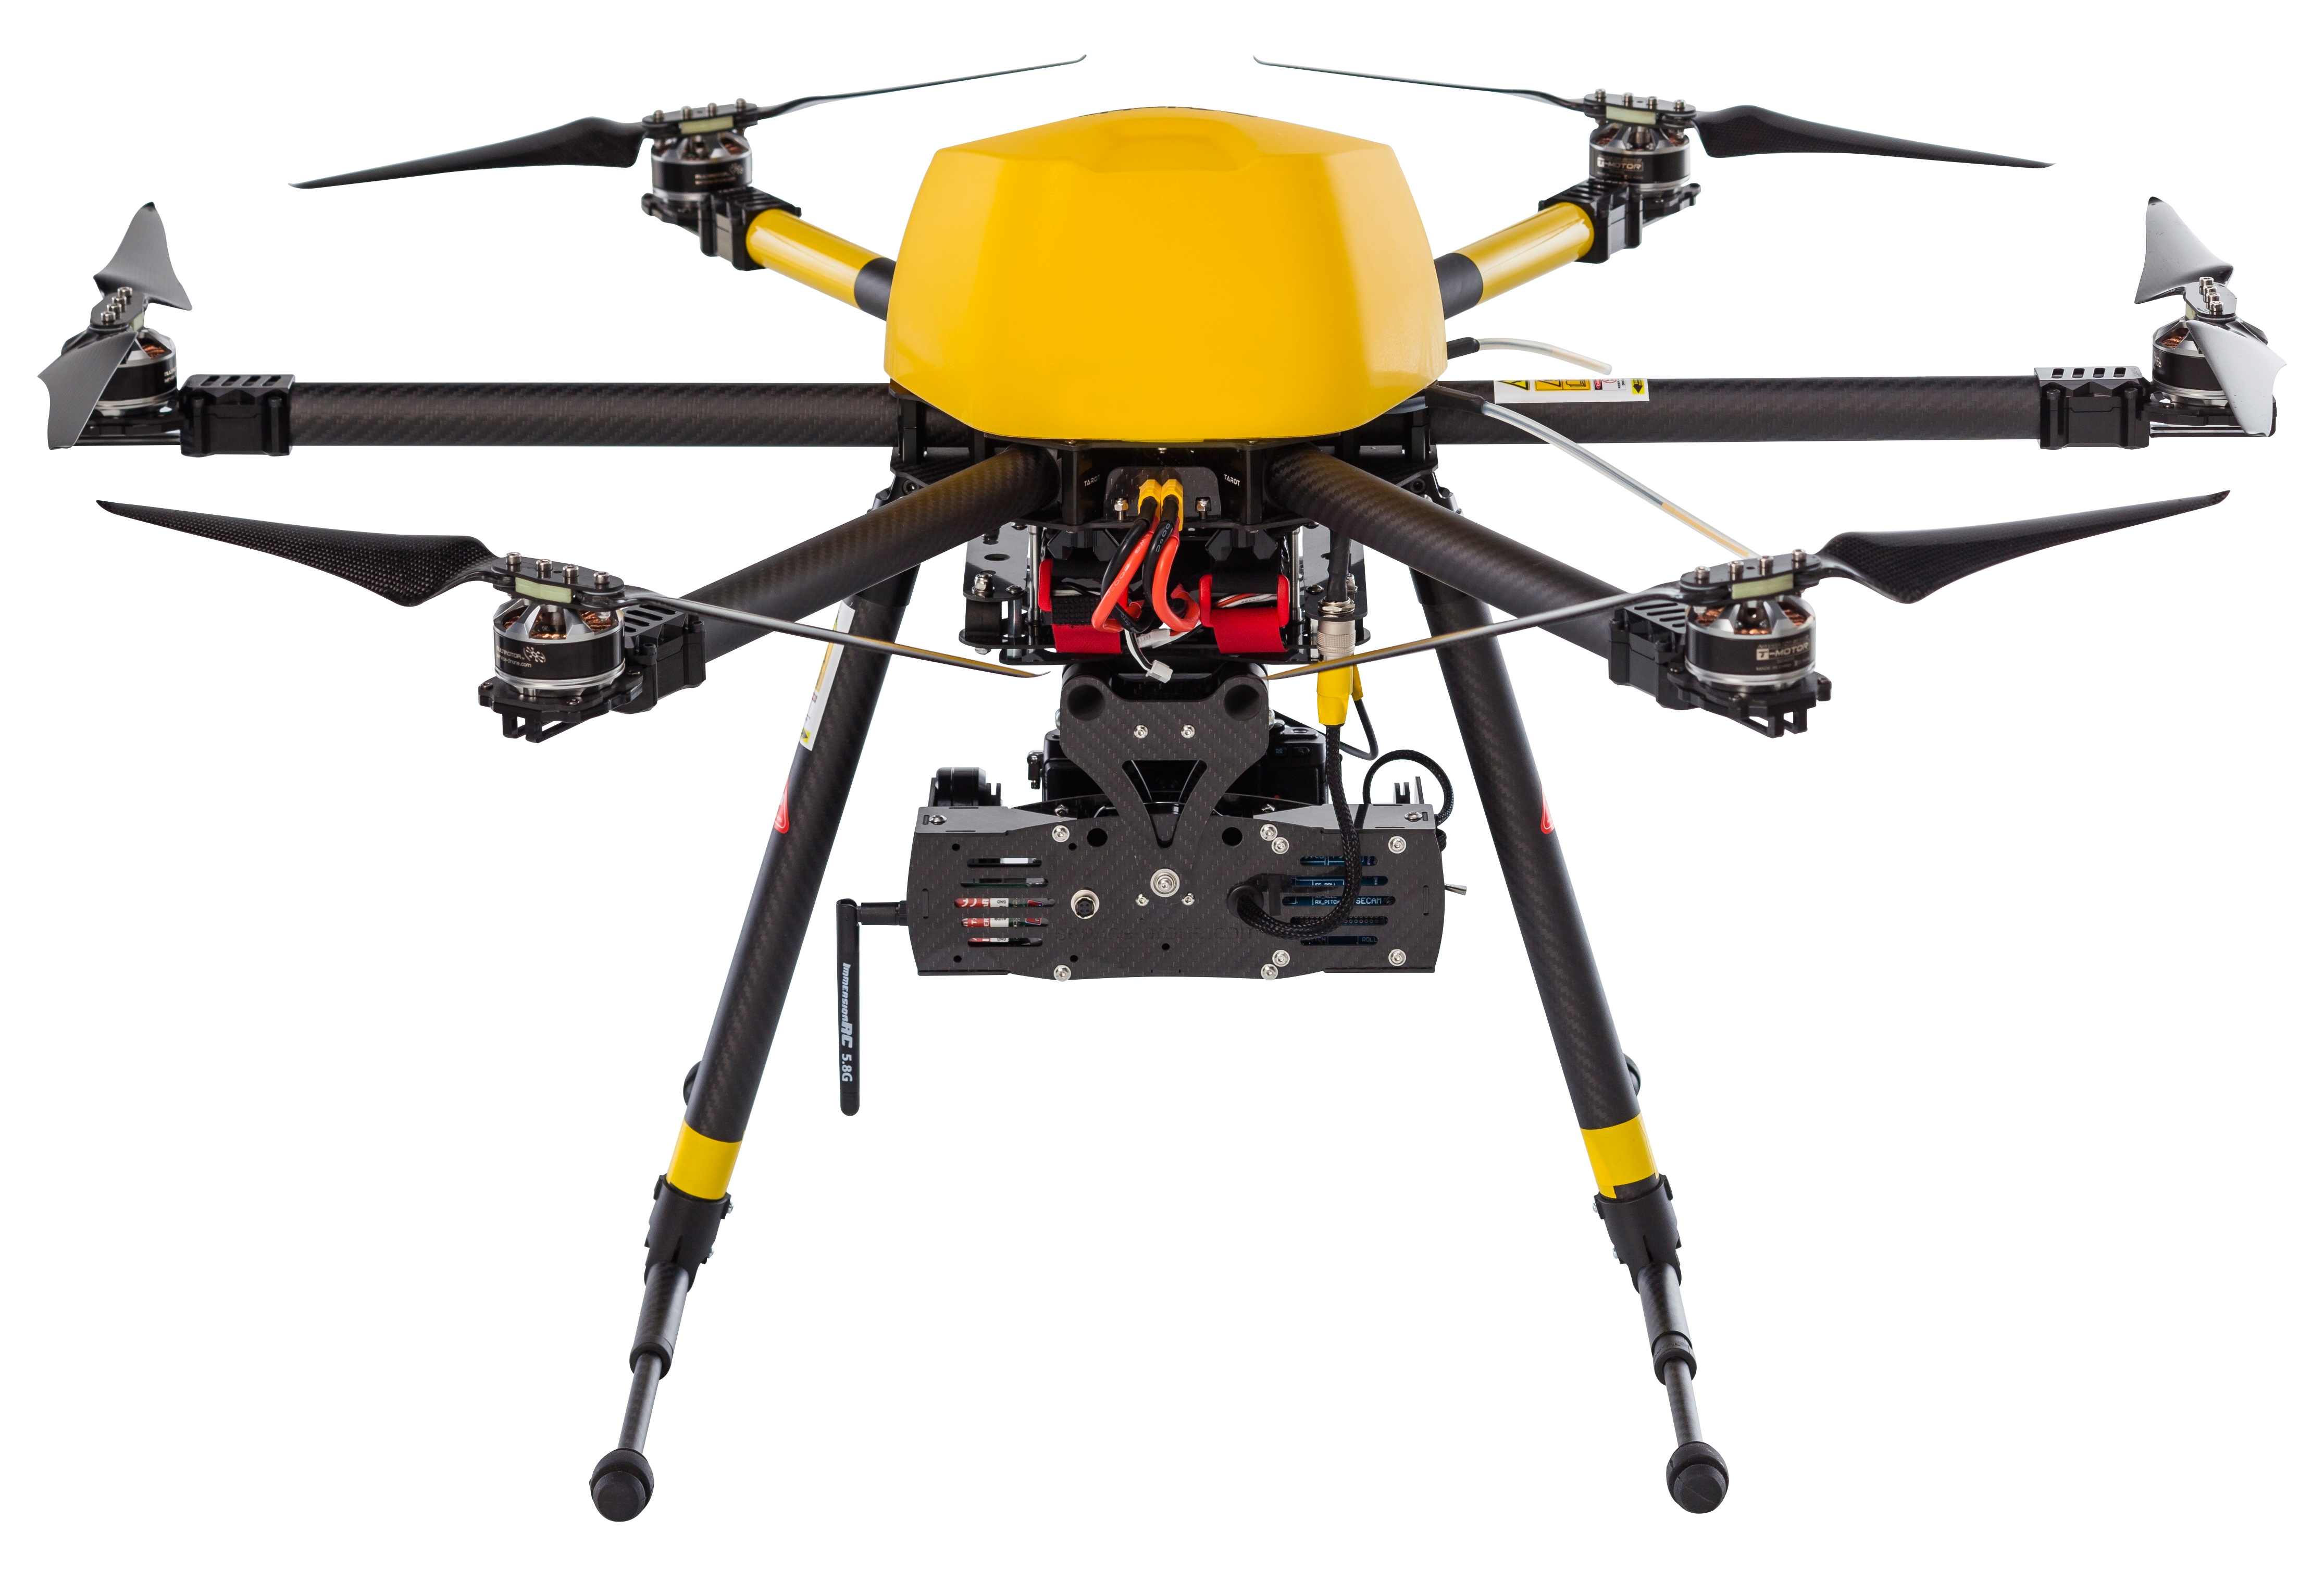 ZX5 Multirotor Unmanned Aircraft System